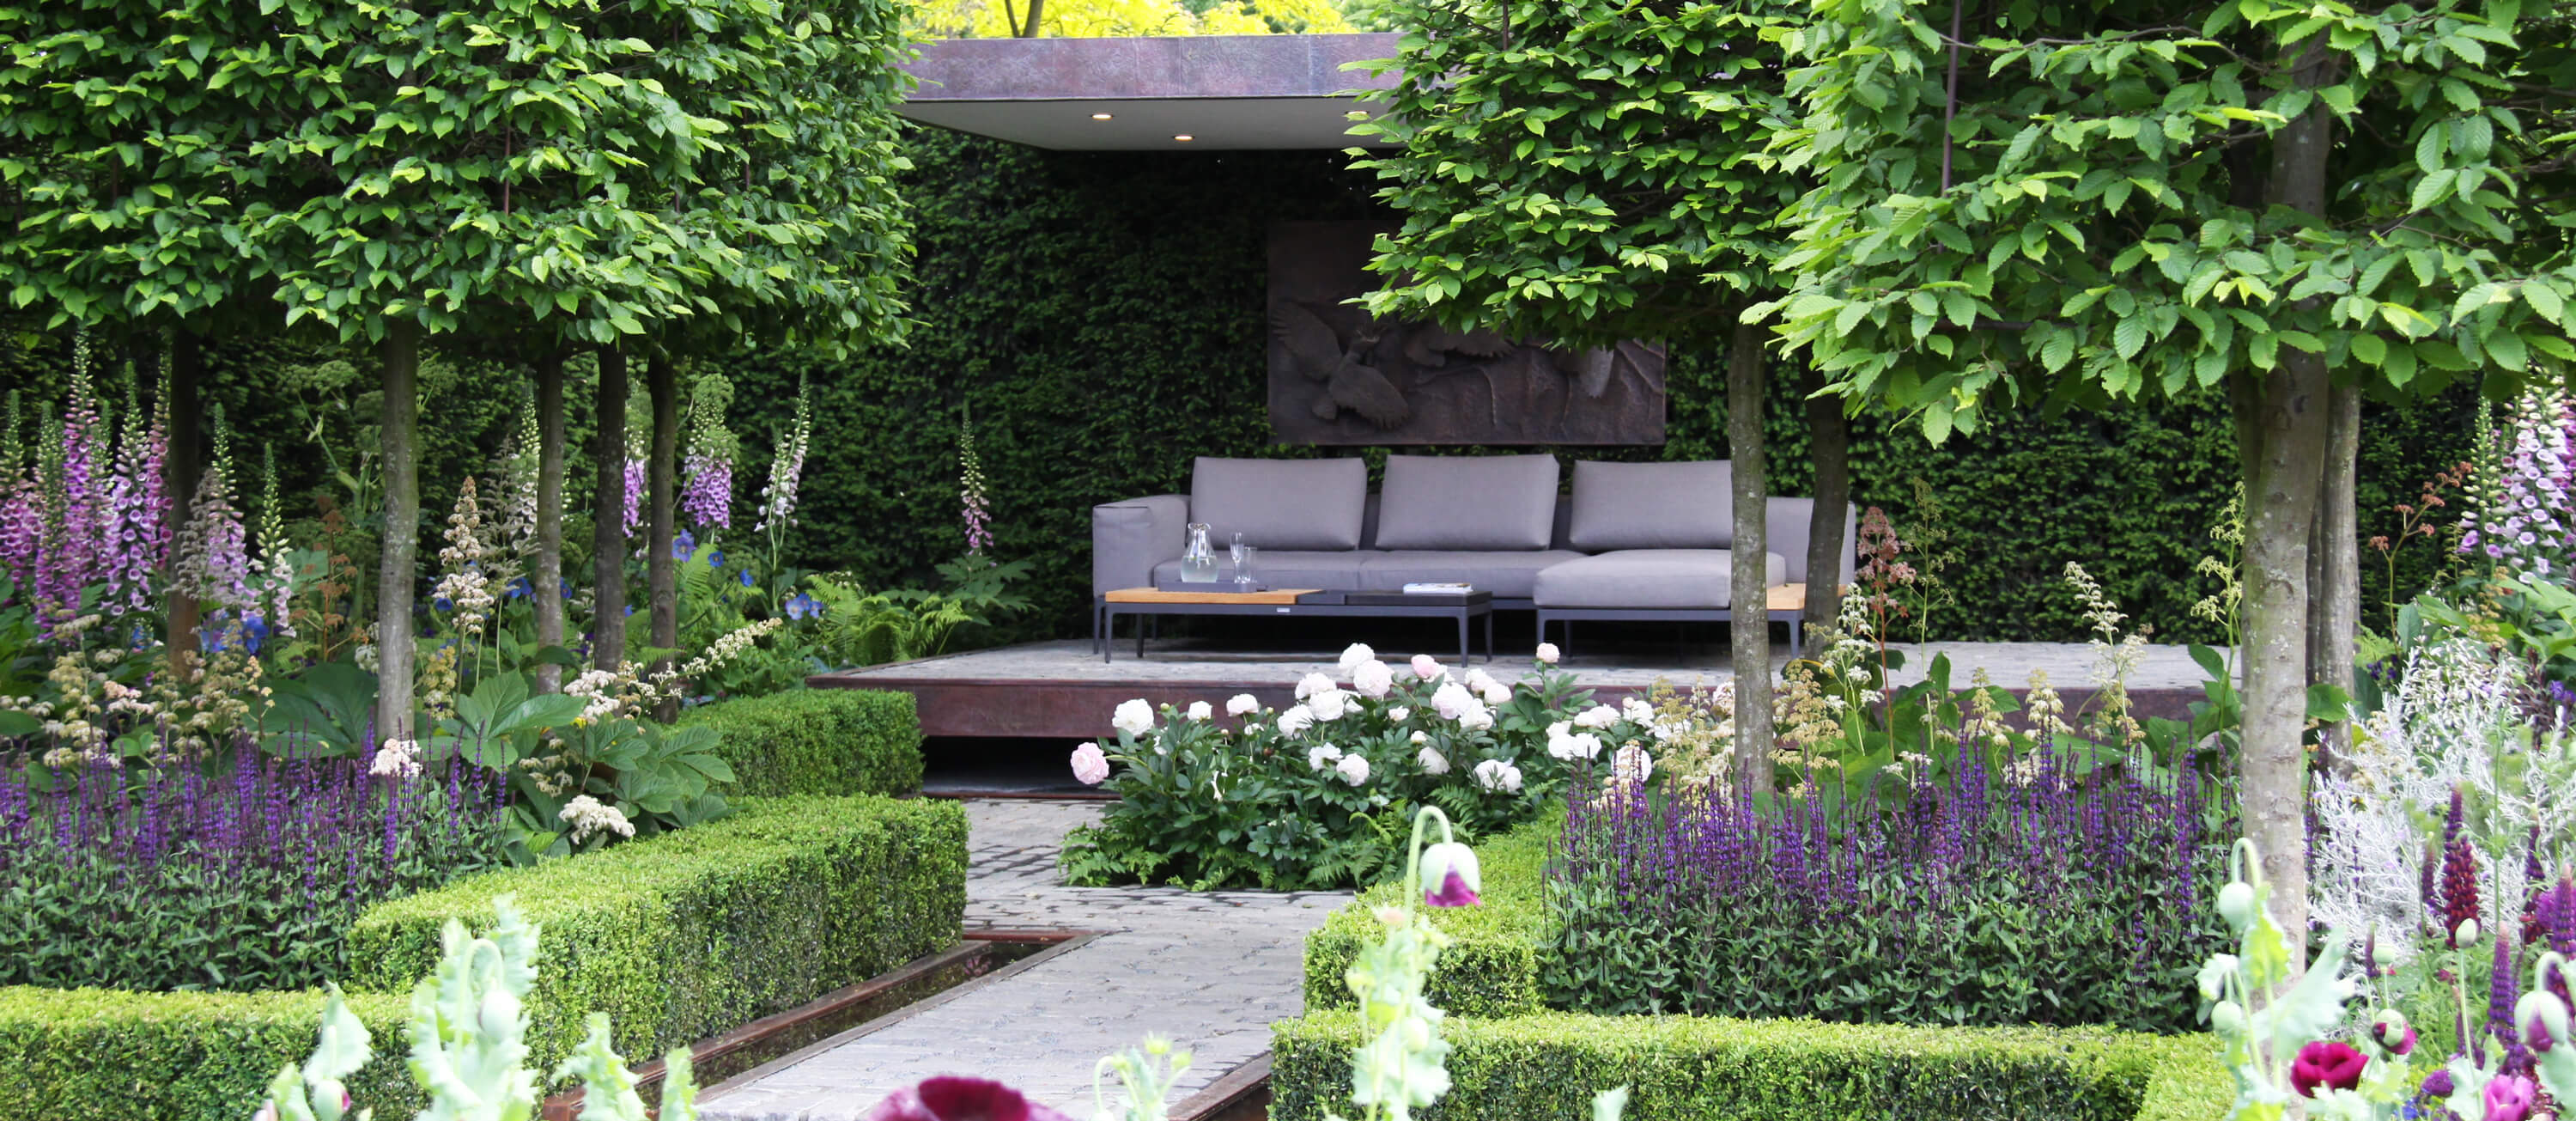 Garten inspiration an der chelsea flower show london for Garten ideen